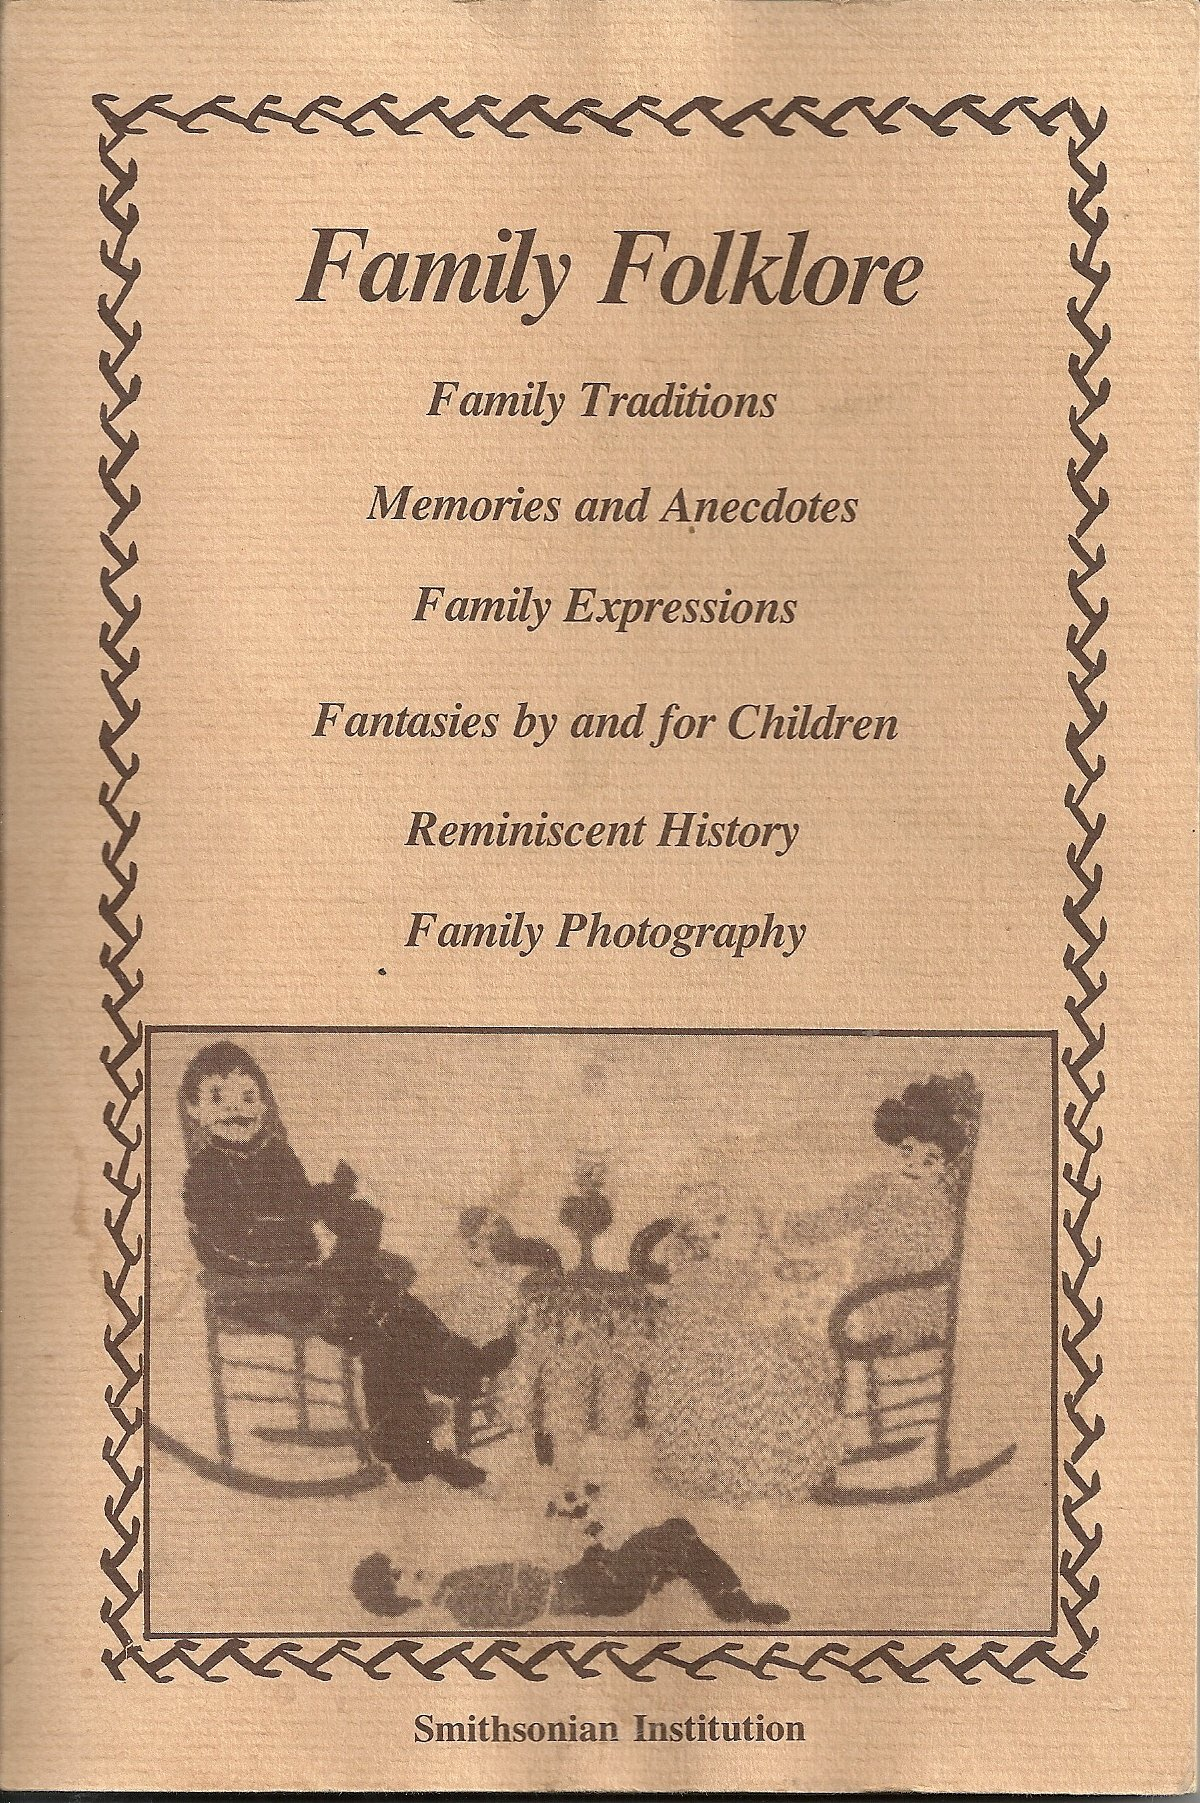 Family Folklore : Family Traditions Memories and Anecdontes Family Expressions Fantasies By and for Children Reminiscent History Family Photography